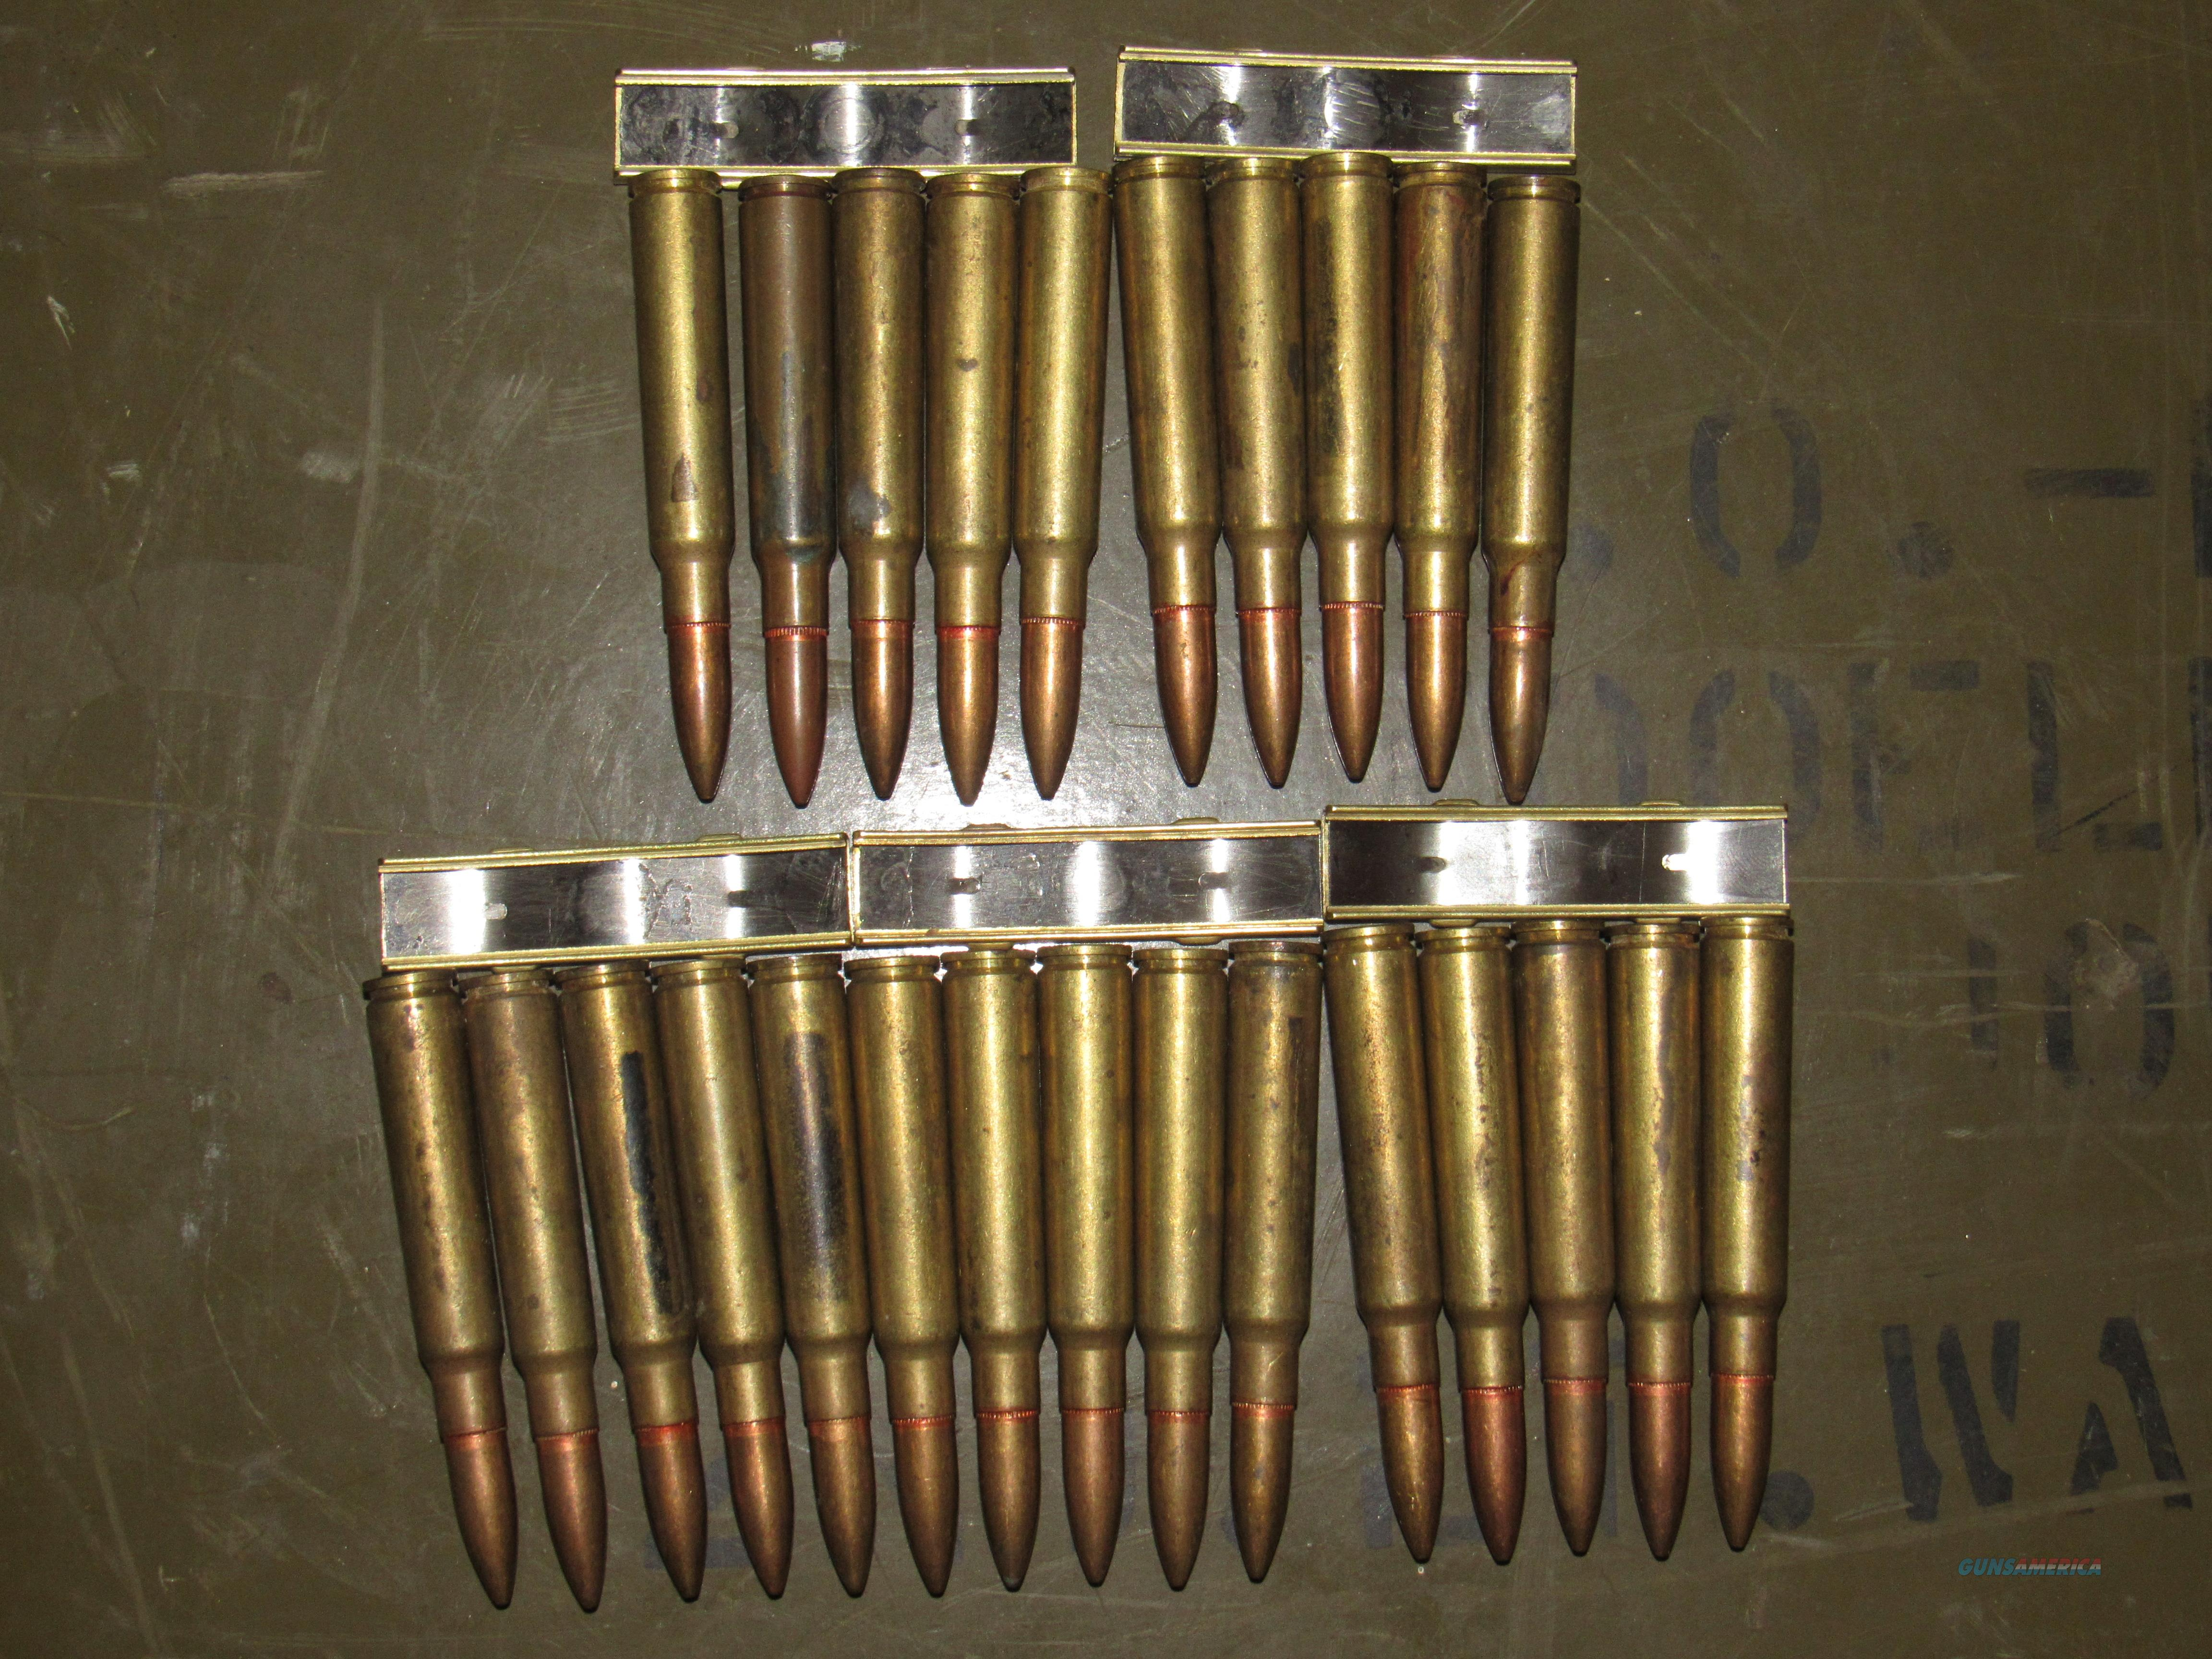 Japanese 5 round Clips 7.7X58 Arisaka rimless Type 99 Rifle ammunition Vintage never fired  Non-Guns > Ammunition